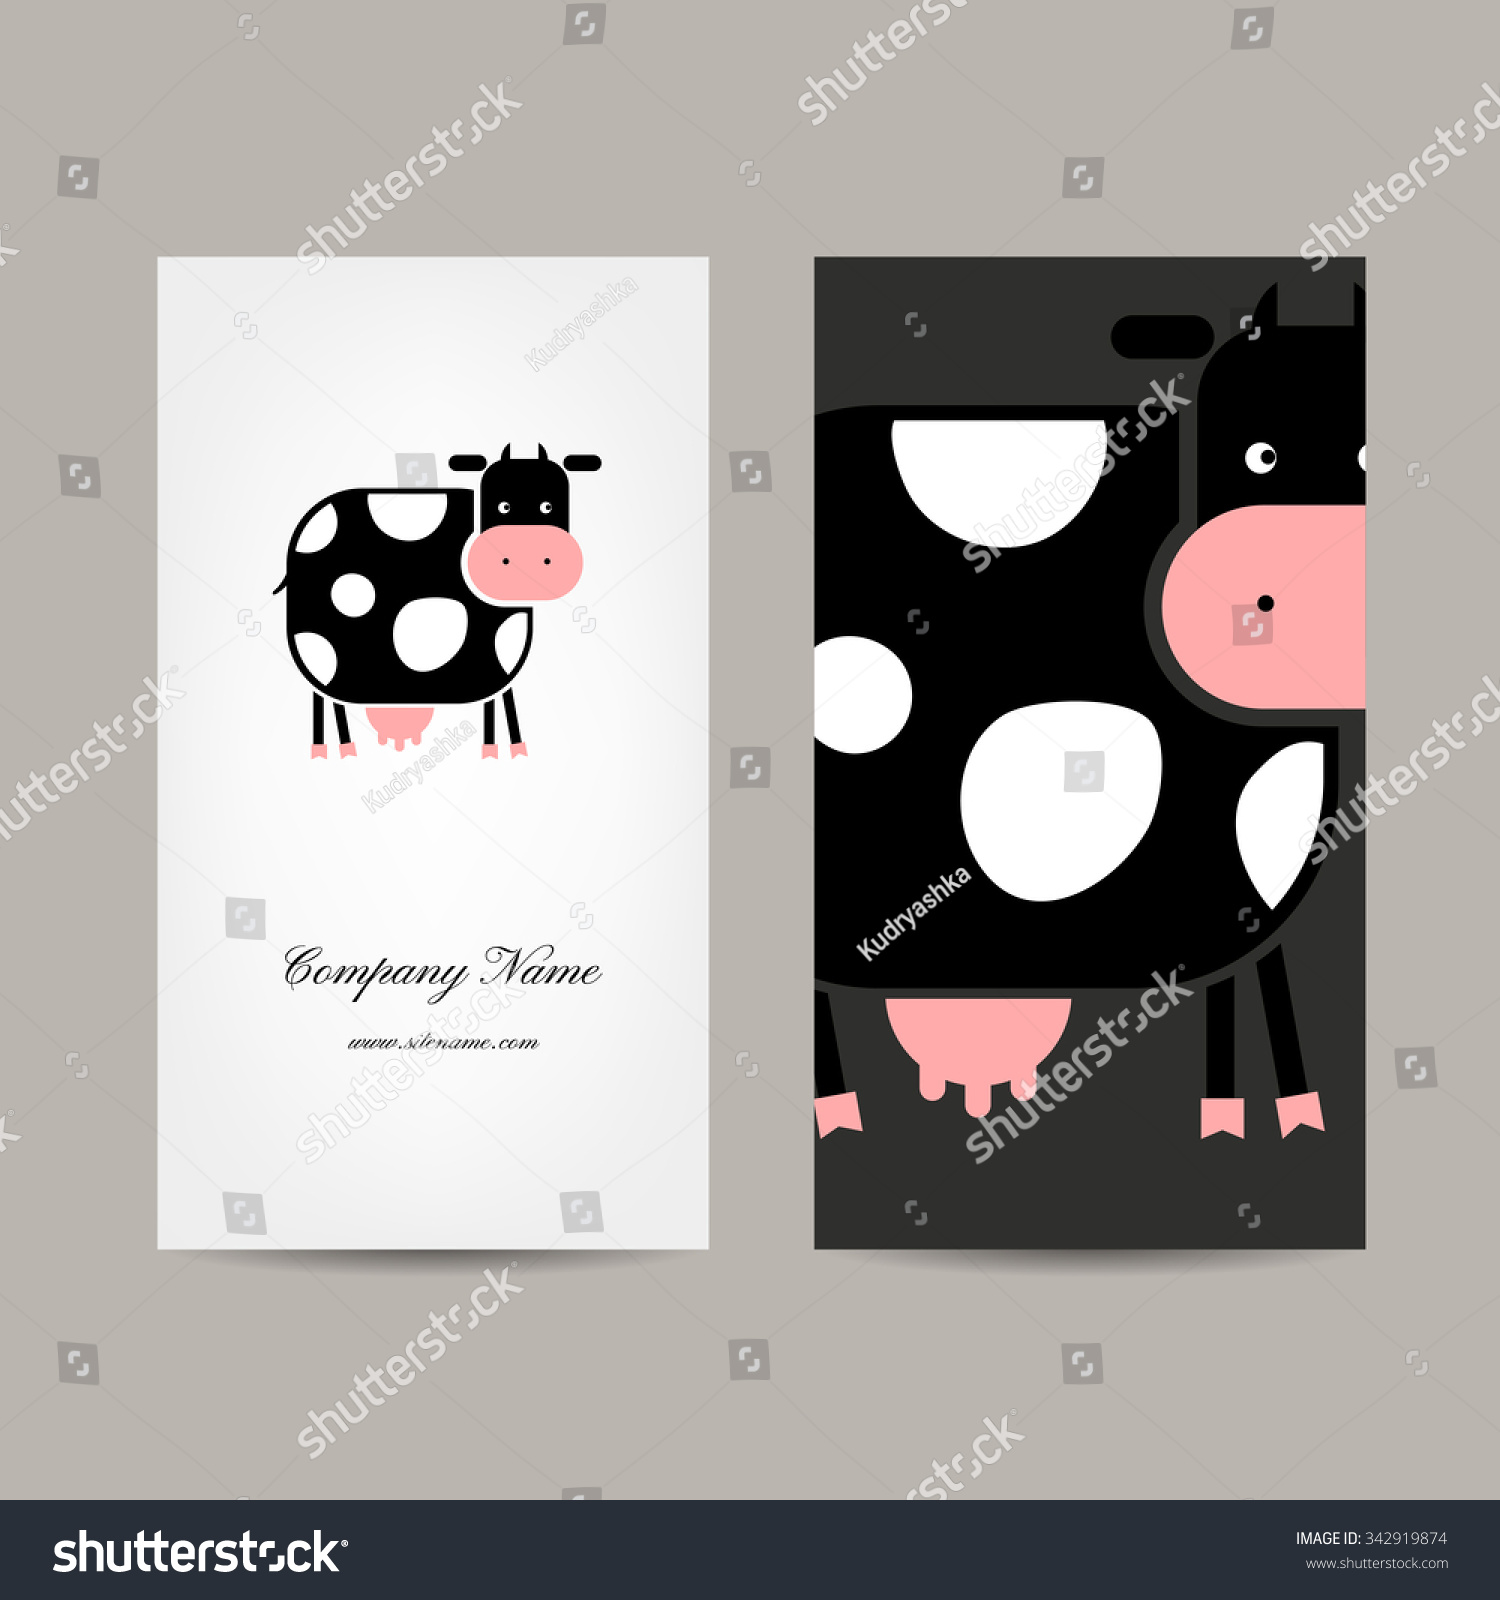 Business Cards Design Funny Cow Vector Stock Vector 342919874 ...